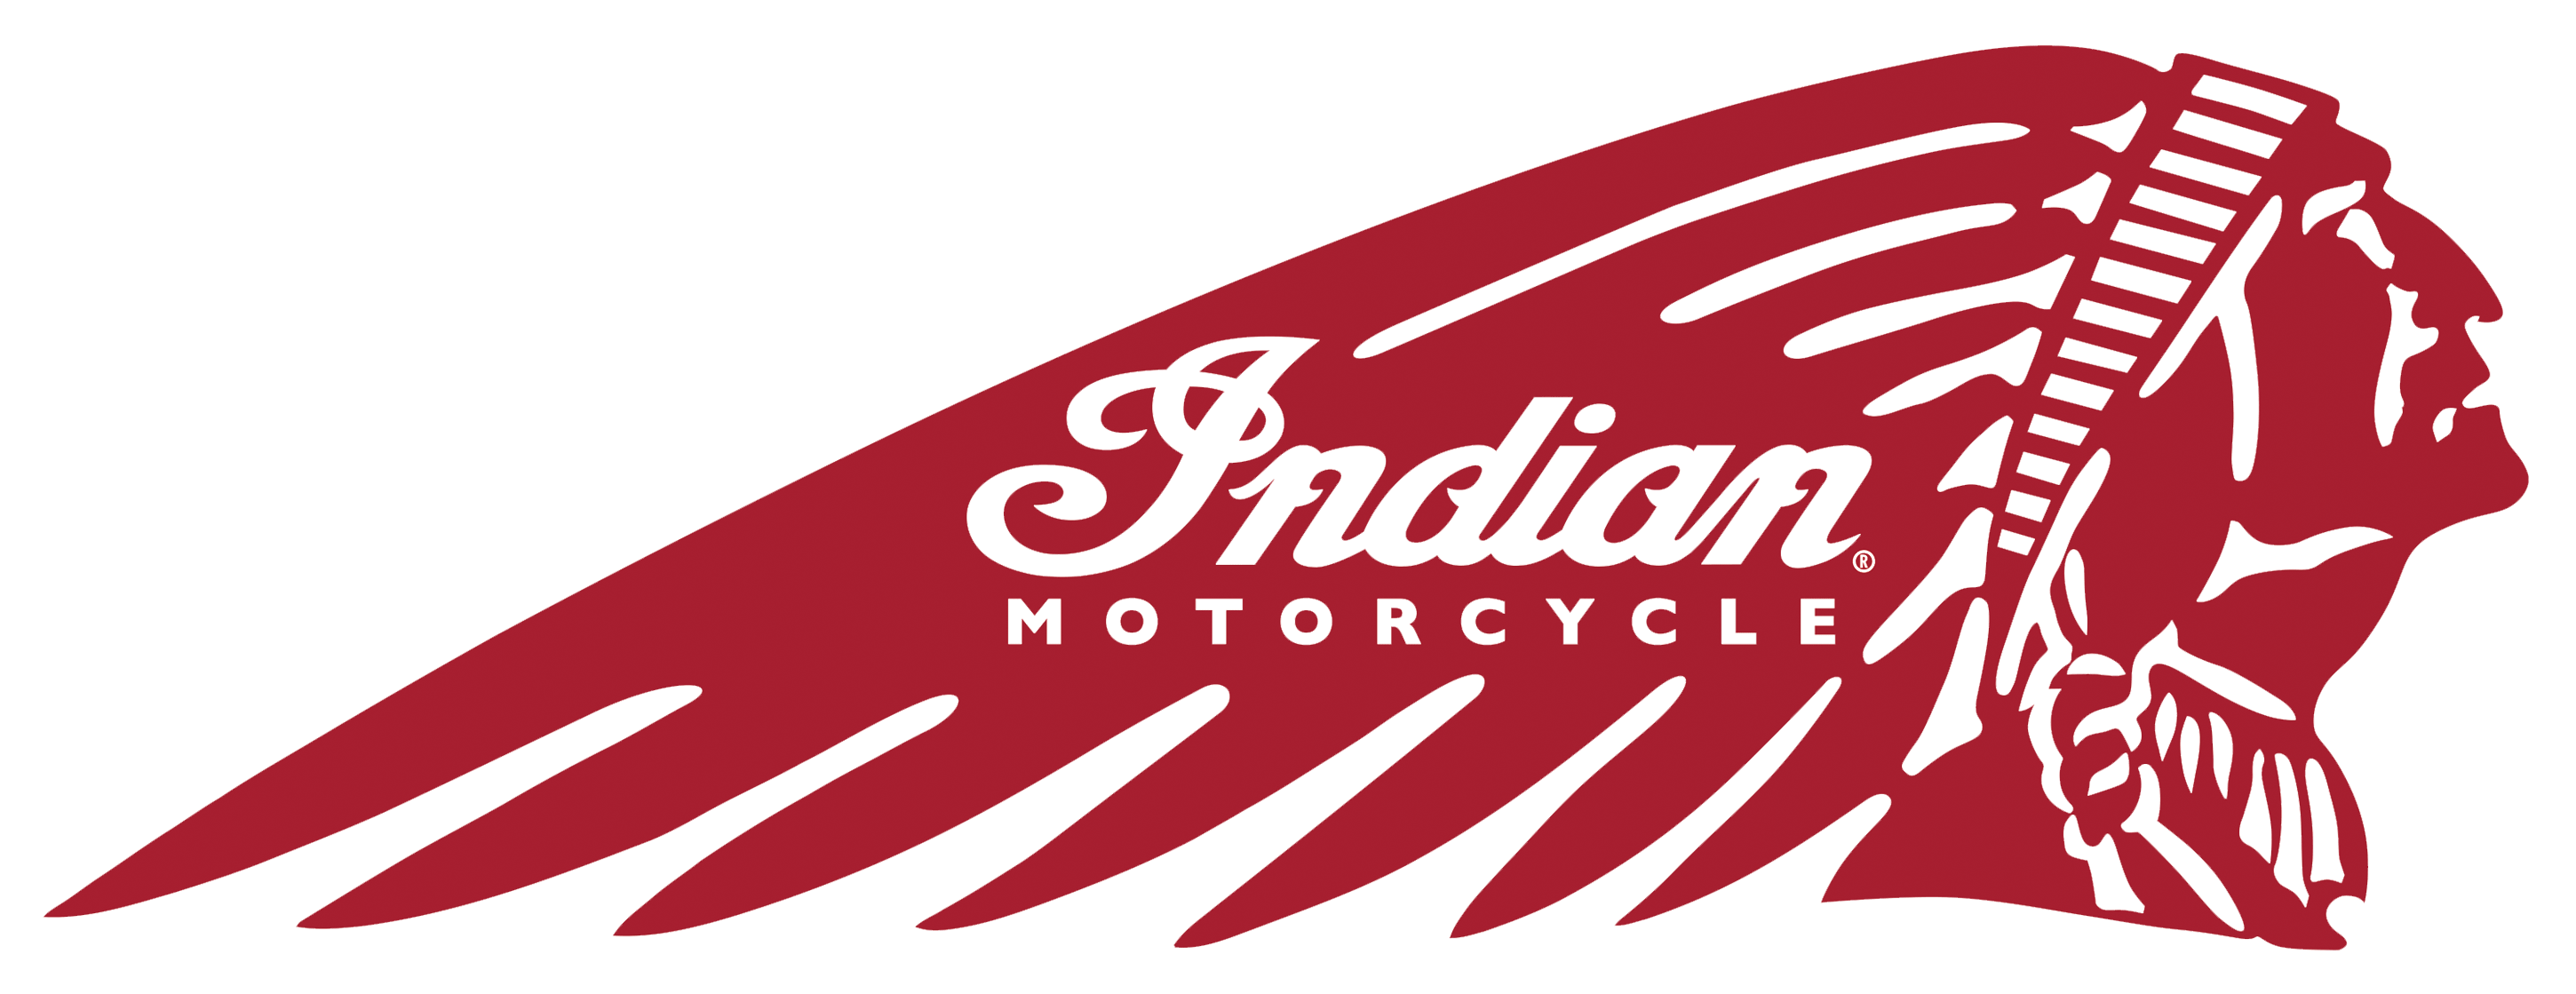 Indian Logo  Motorcycle Brands. Pneumonia Uip Signs. Bicycle Wheel Stickers. Awareness Week Signs Of Stroke. School Project Stickers. Cupcake Decals. Wondows Logo. Consultation Room Signs Of Stroke. Bear Hunting Decals